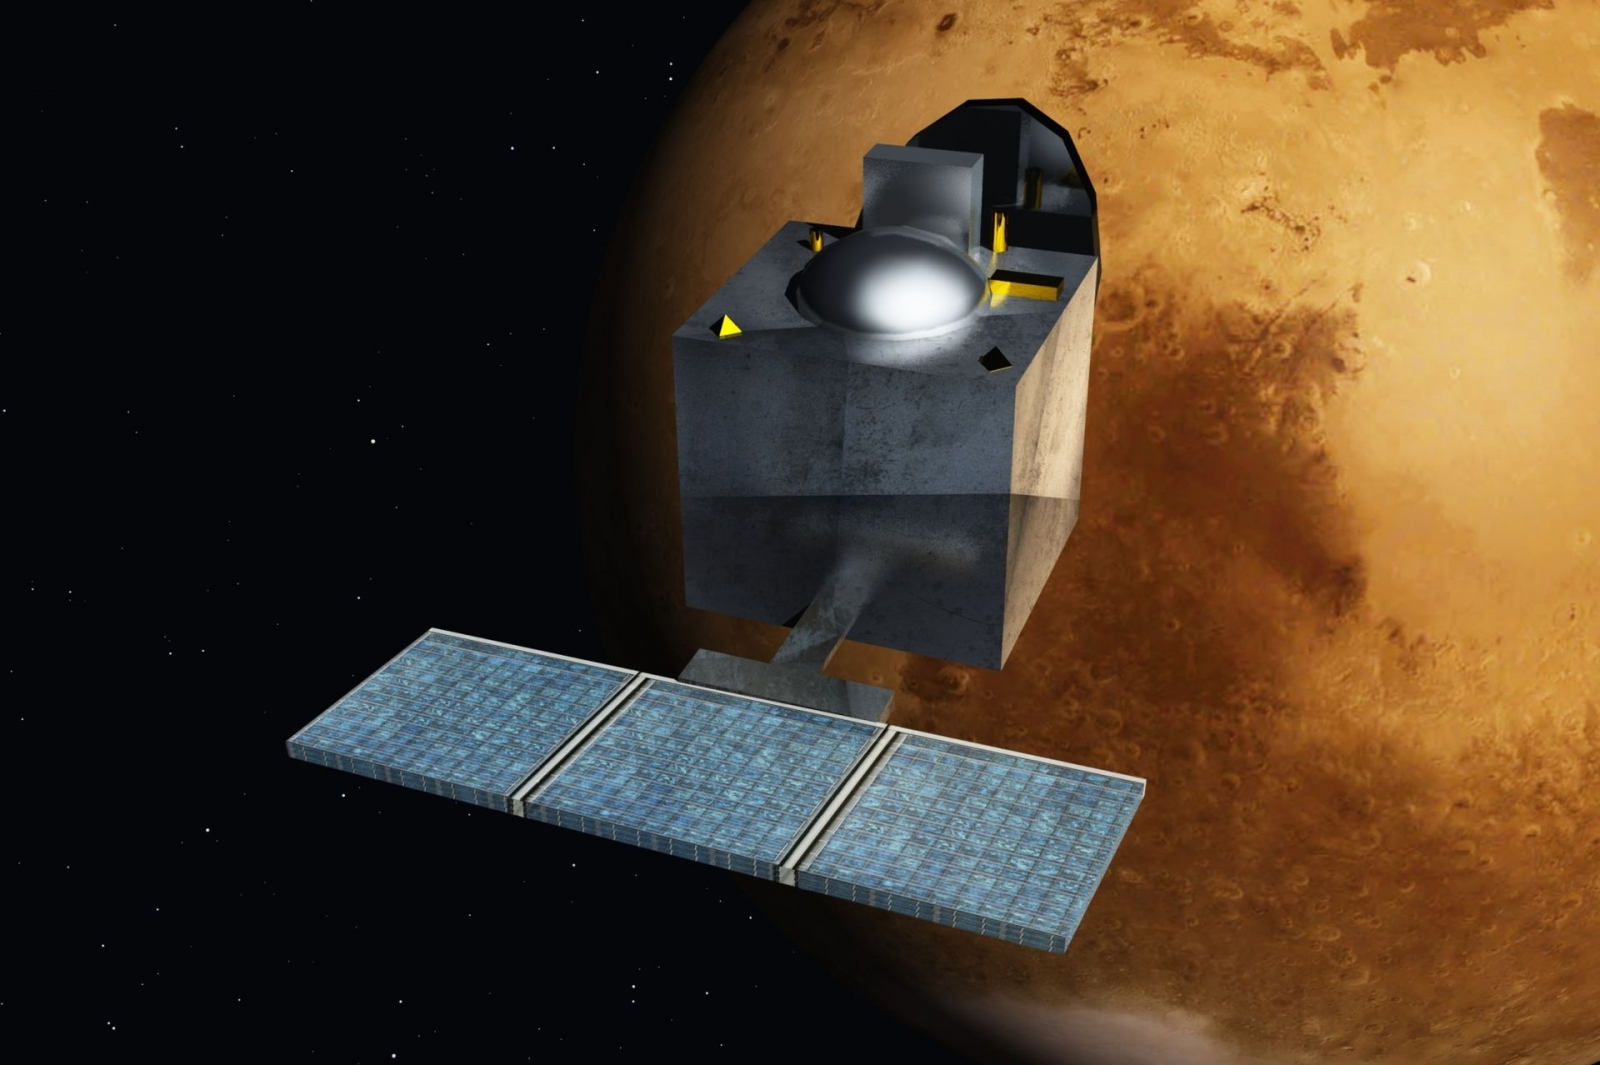 spacecraft and mars orbiter mission The primary objective of the mars orbiter mission is to showcase india's rocket launch systems, spacecraft building and operations capabilities specifically, the primary objective is to develop the technologies required for designing, planning, management and operations of an interplanetary mission  [25].